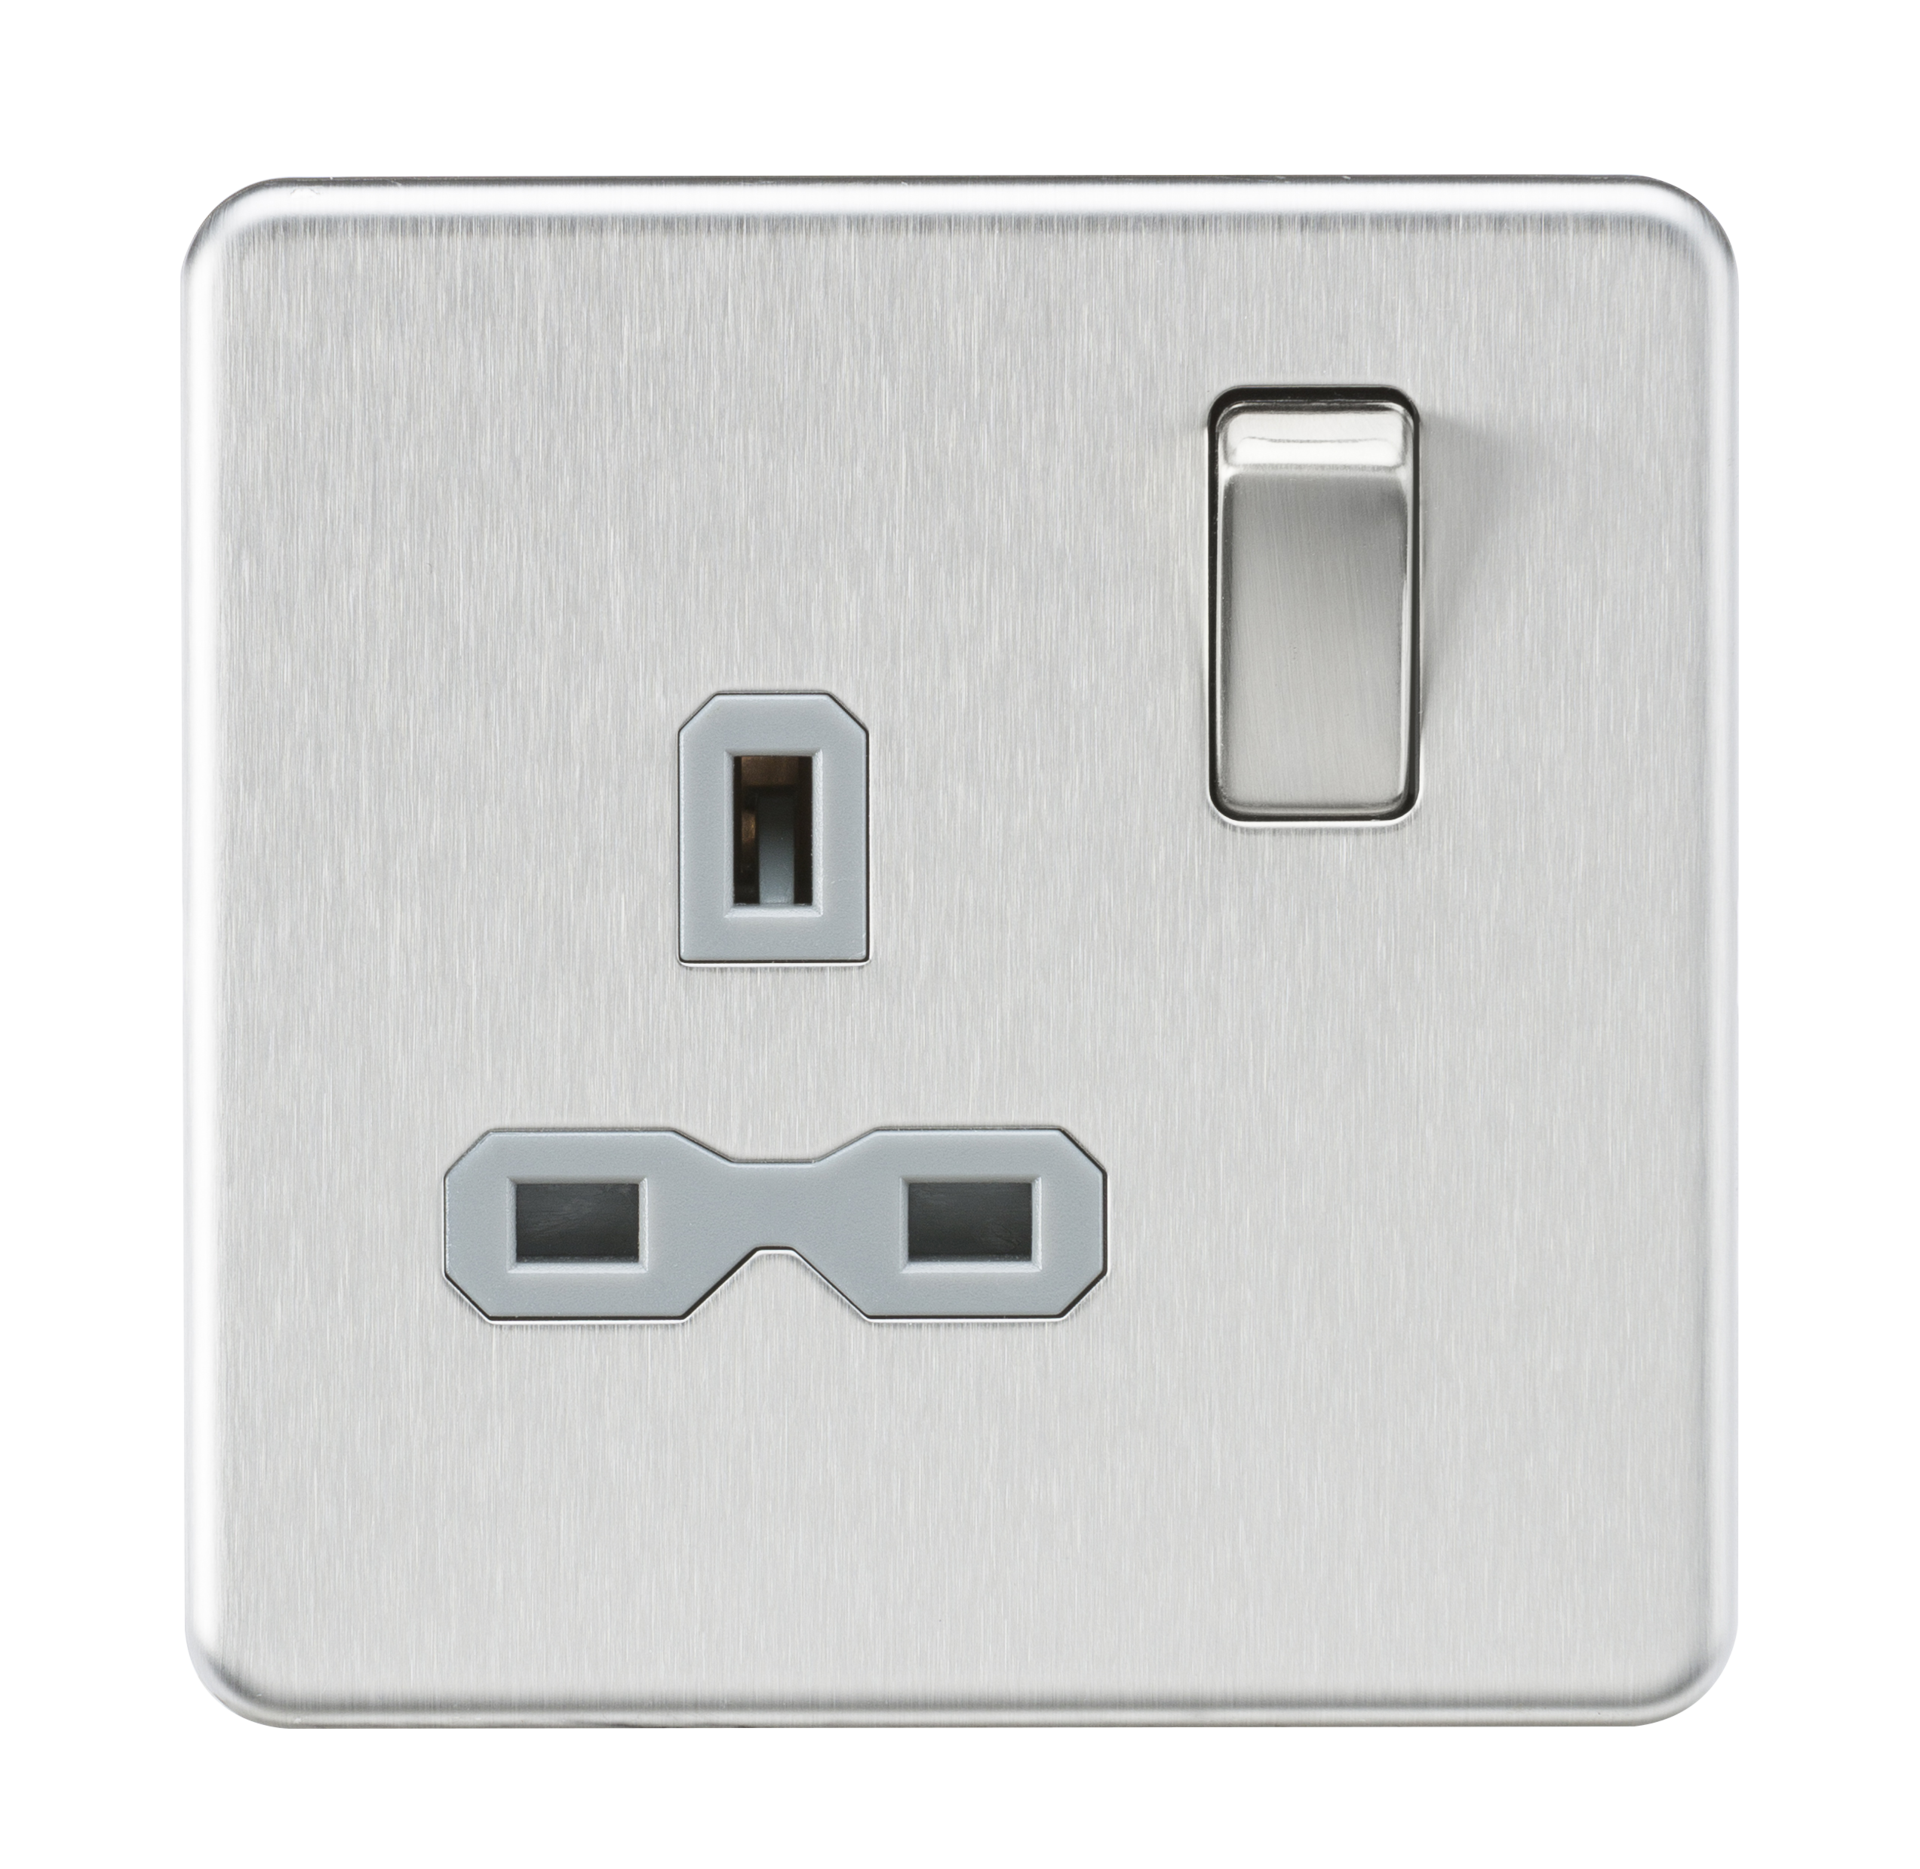 Screwless 13A 1G DP switched socket - Brushed chrome with grey insert